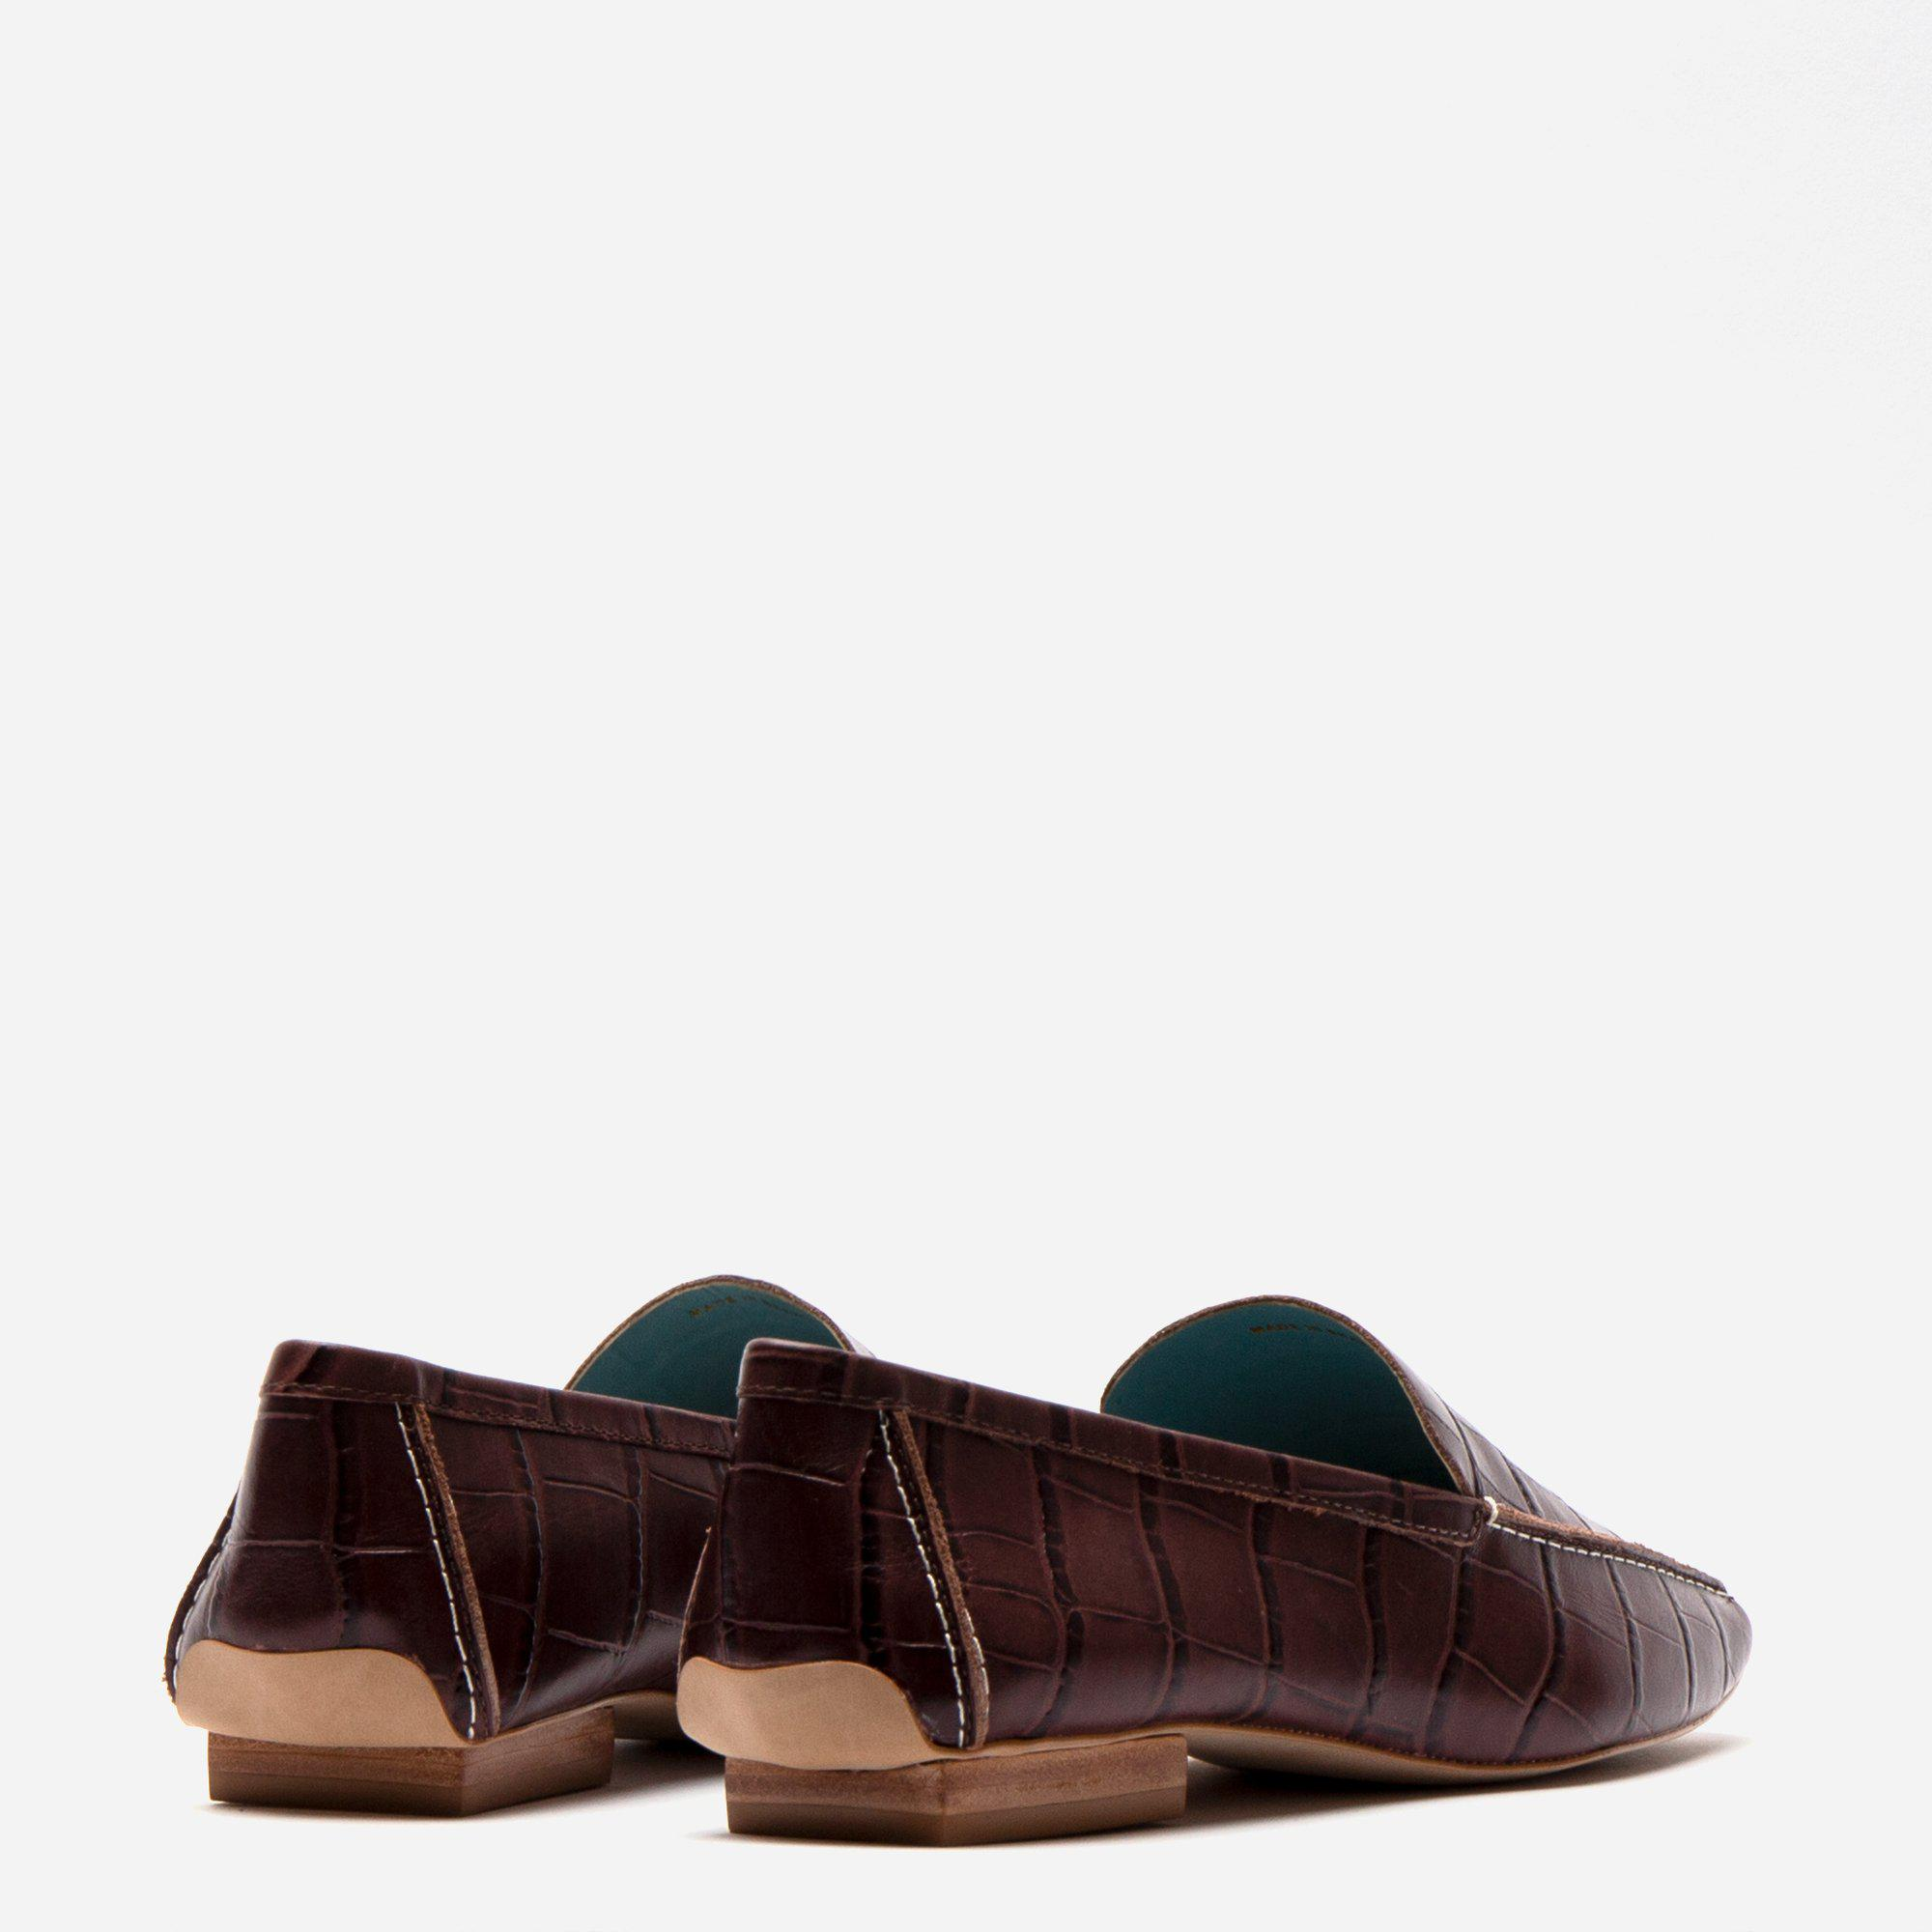 Elyce Loafer Croc Embossed Chocolate 3